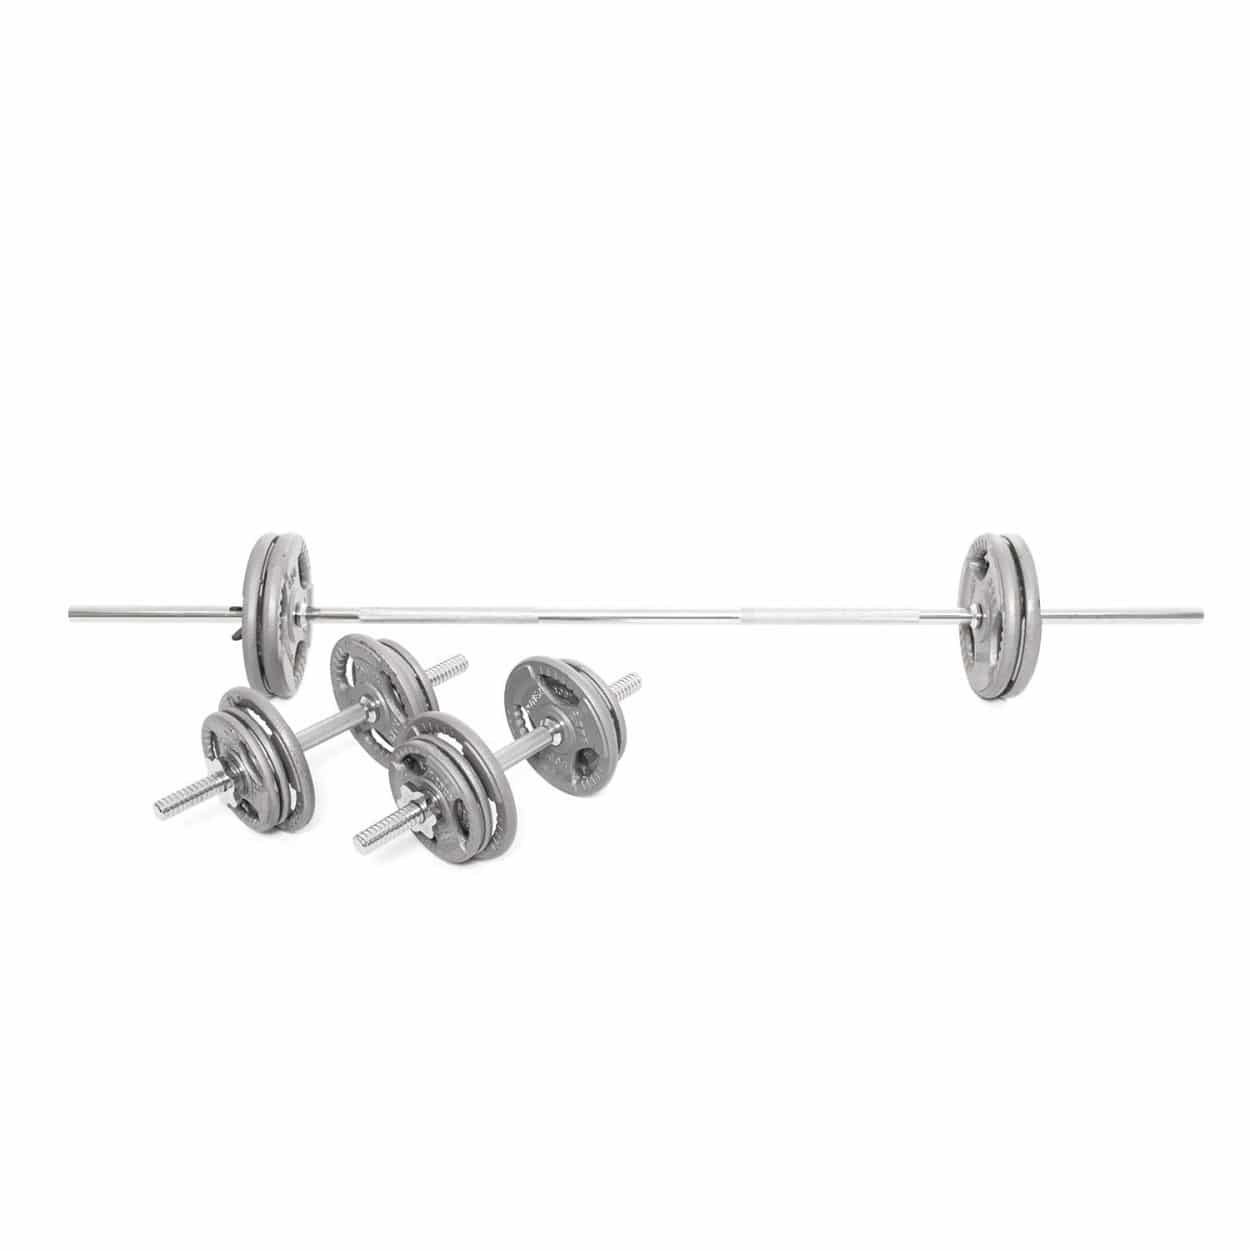 Body Power 6ft Tri-Grip Weight Set